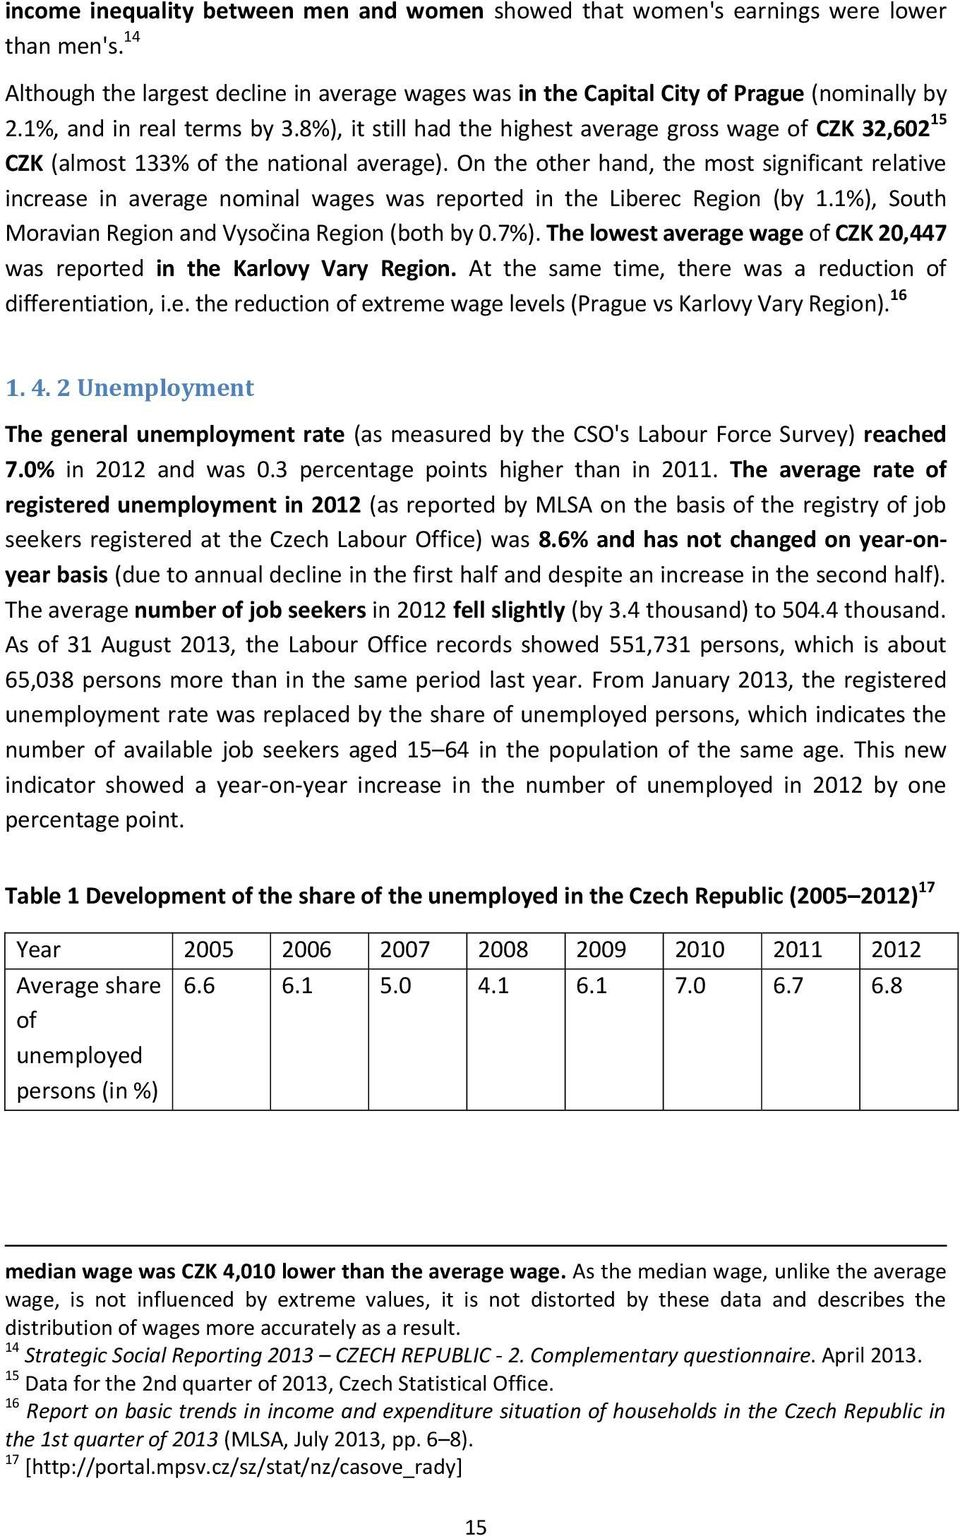 On the other hand, the most significant relative increase in average nominal wages was reported in the Liberec Region (by 1.1%), South Moravian Region and Vysočina Region (both by 0.7%).